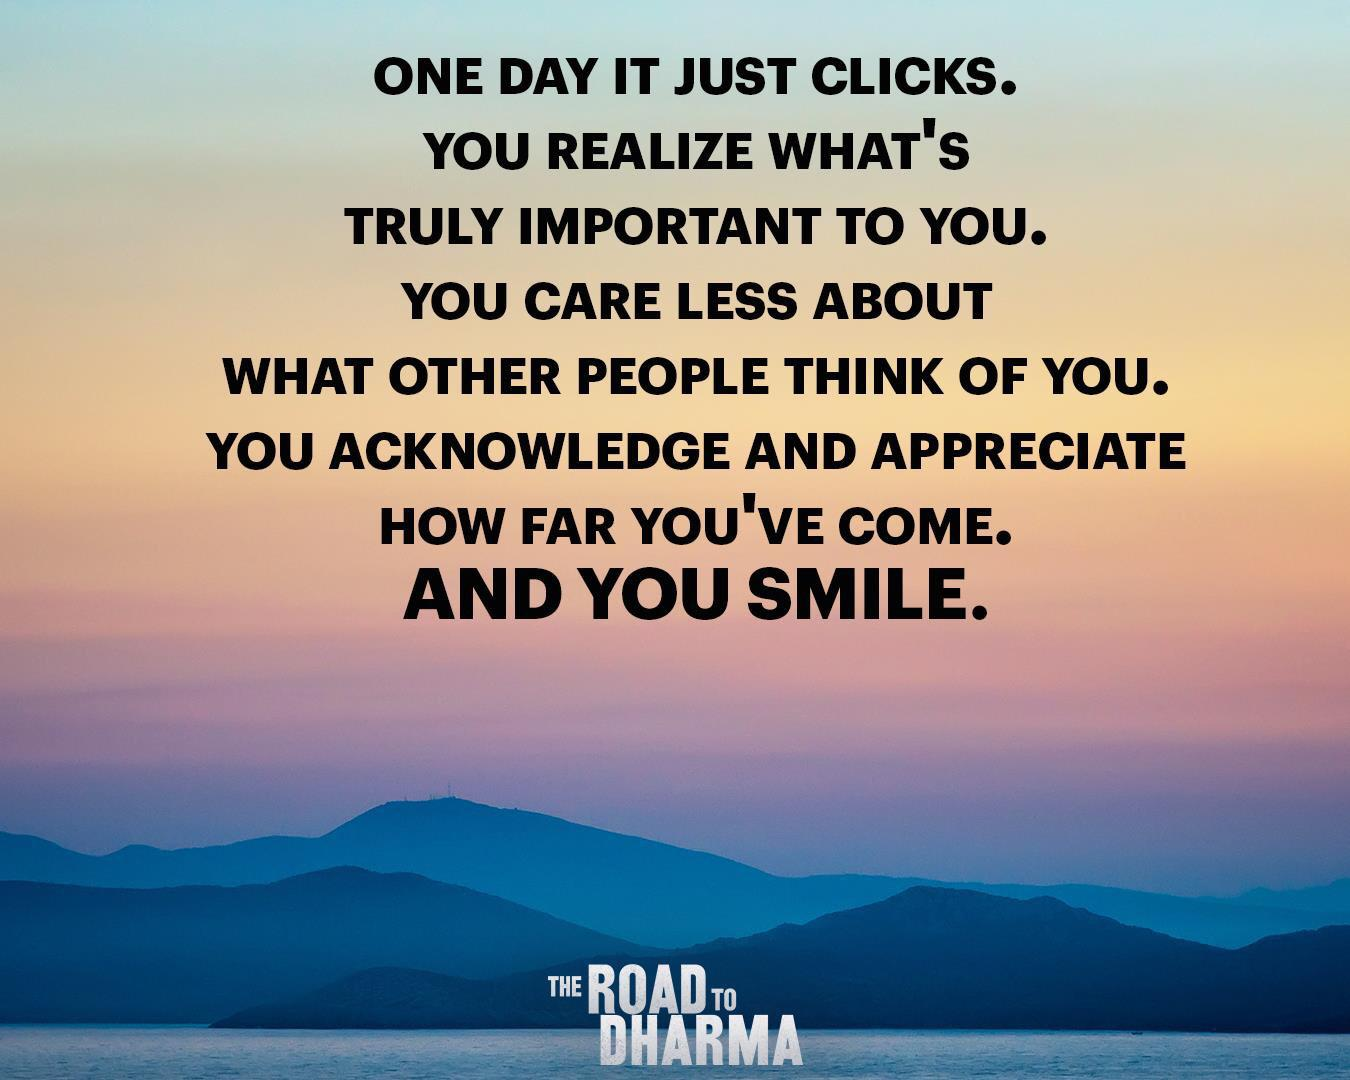 """One day it just clicks. You realize what's truly important to you….."" – Anand Mehrotra [1350×1080]"